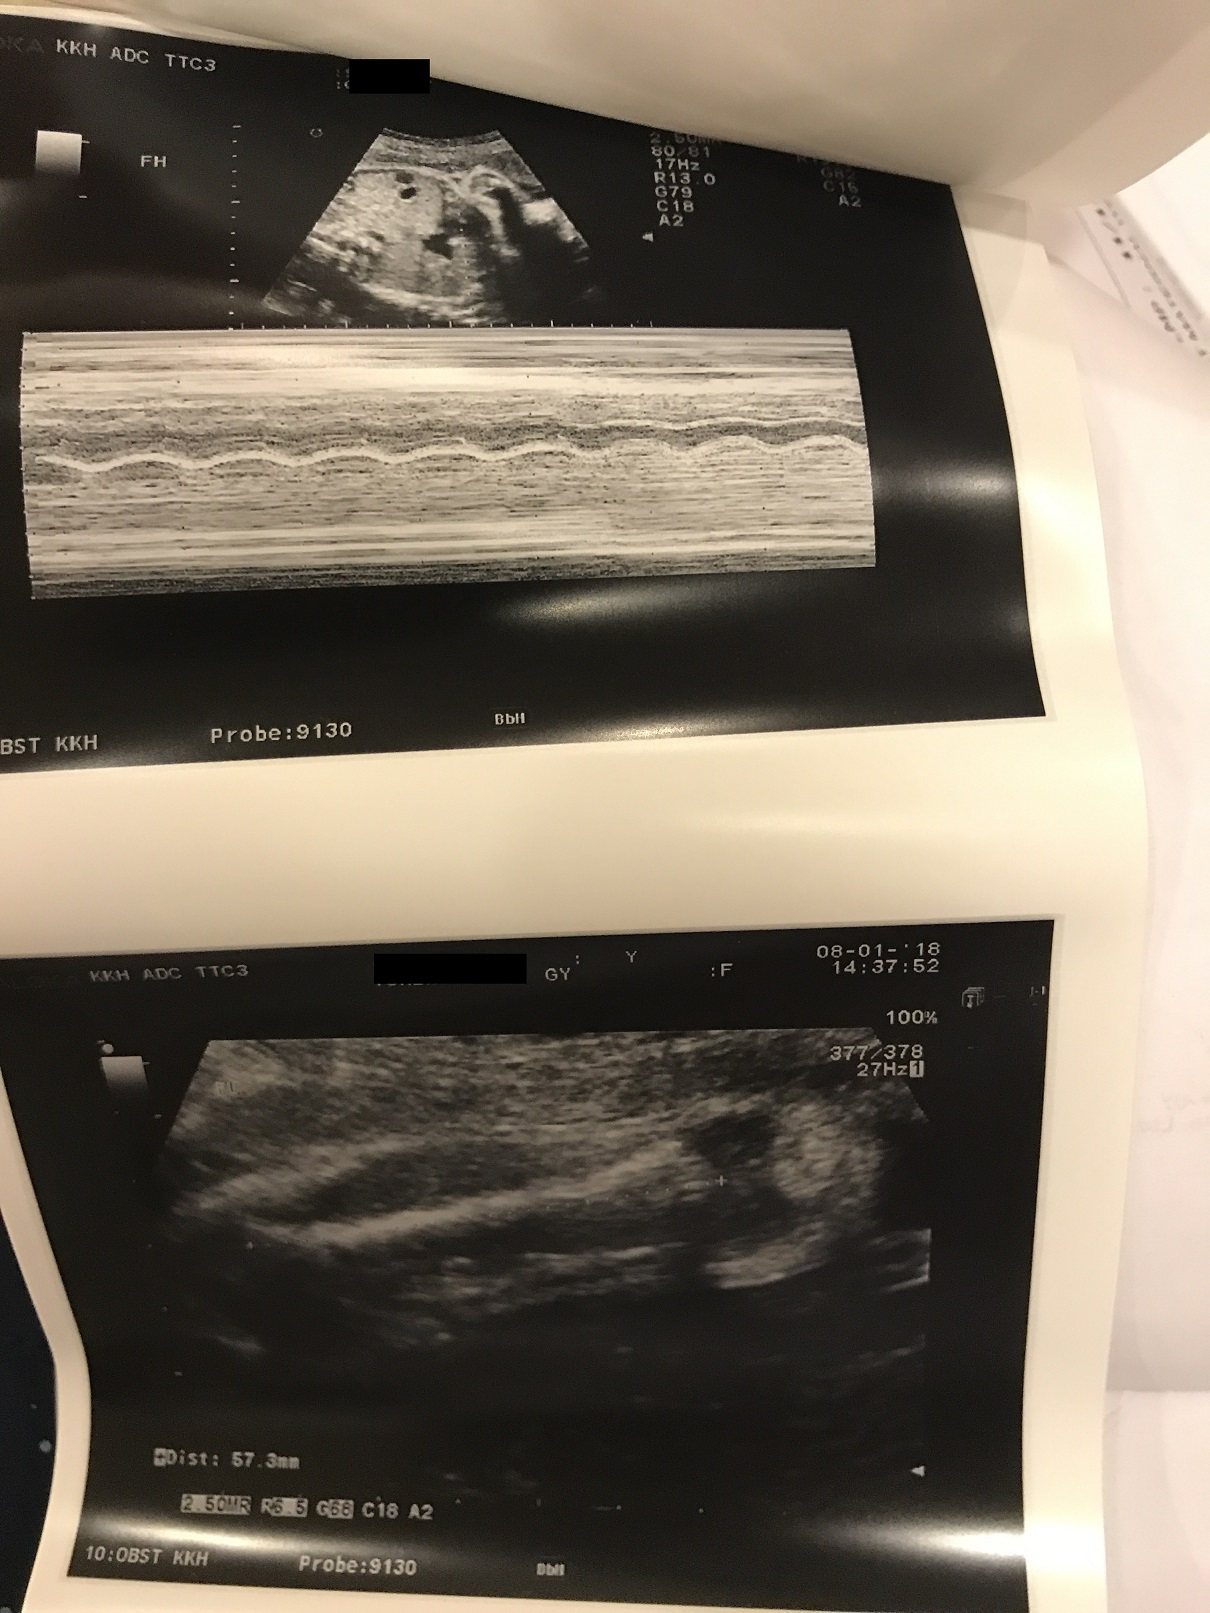 Leg length and the heartbeat is normal!